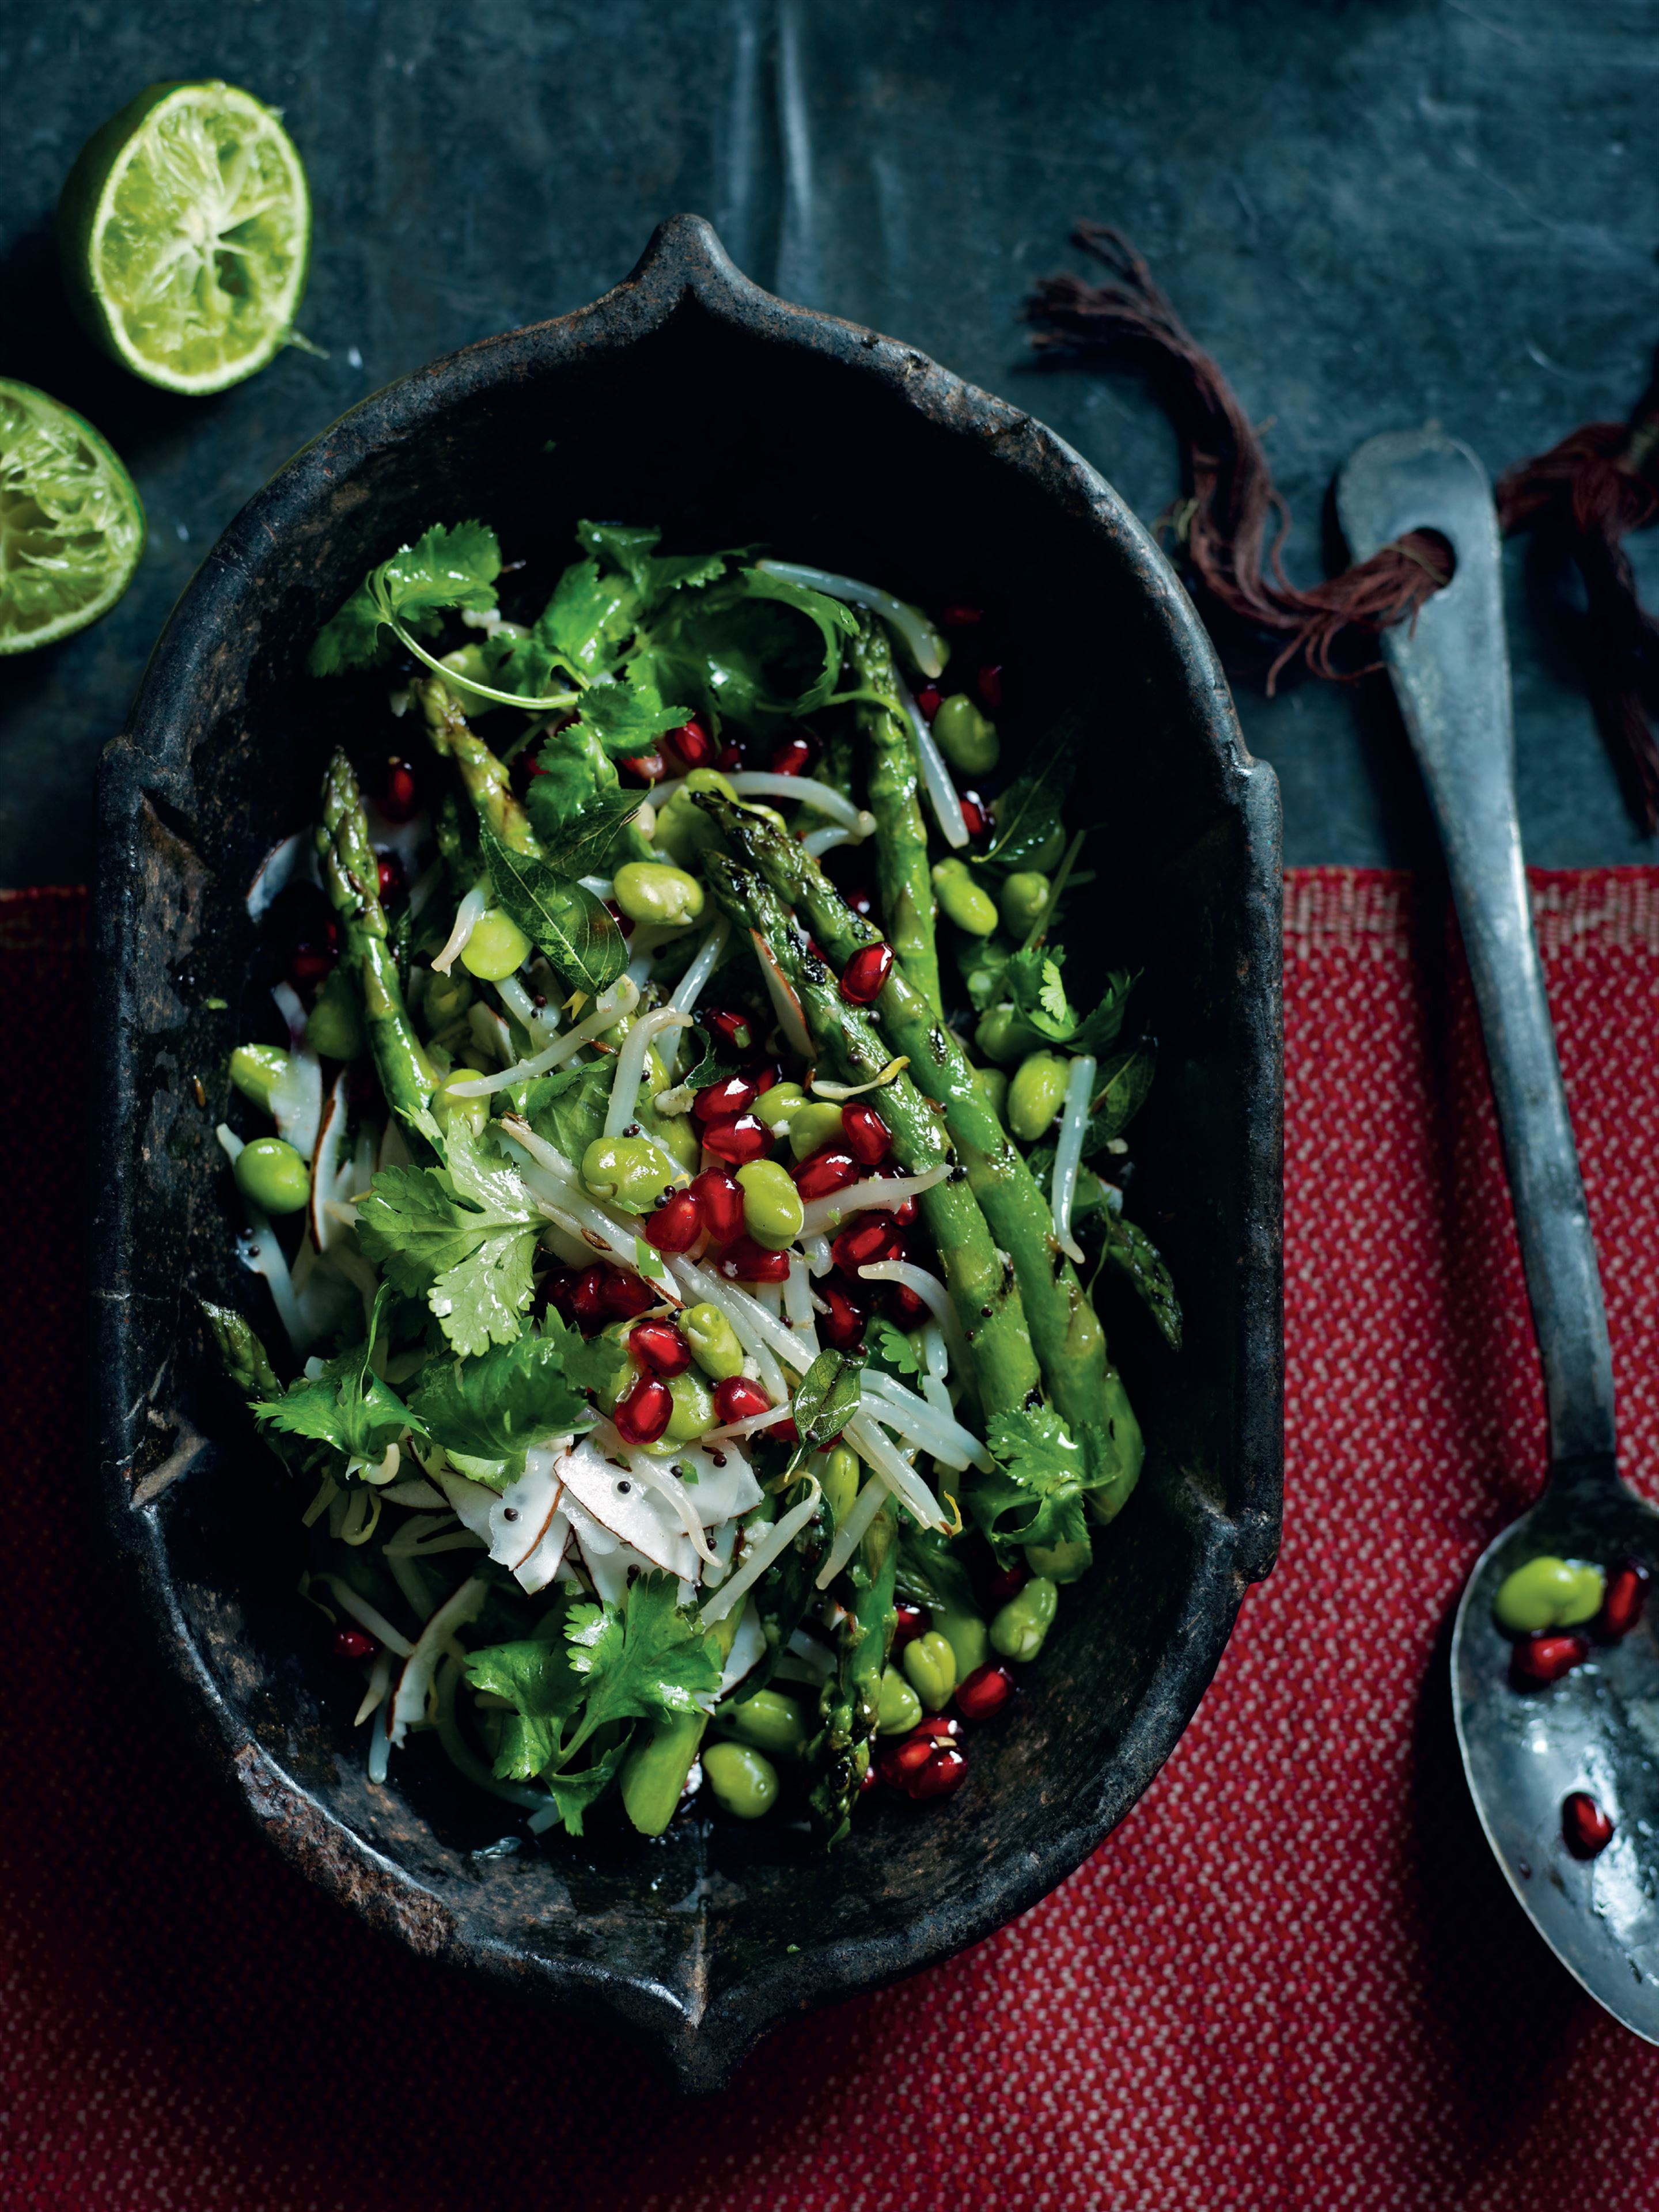 Beansprout salad with chargrilled asparagus and coconut